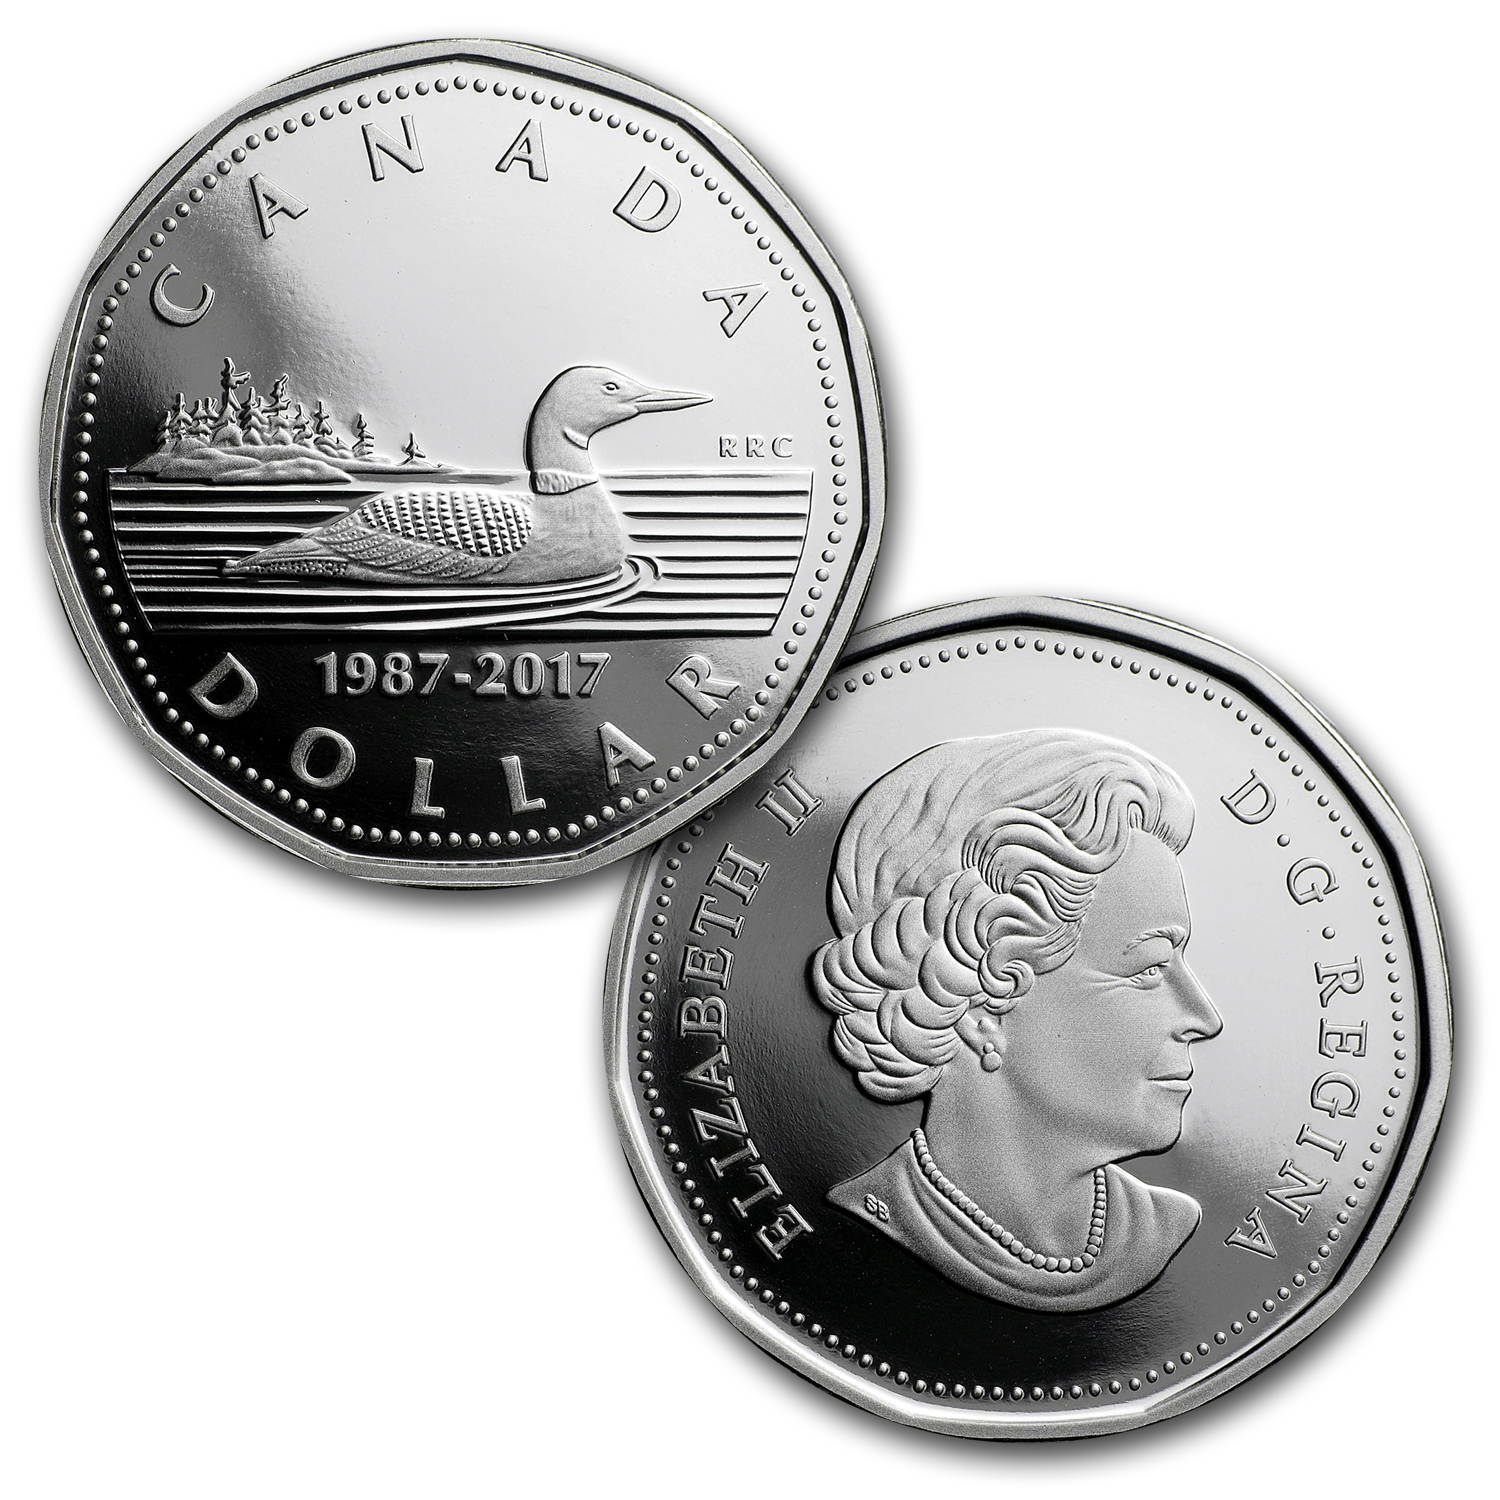 2017 Canada 2-Coin Silver Anniversary of the Loonie Set